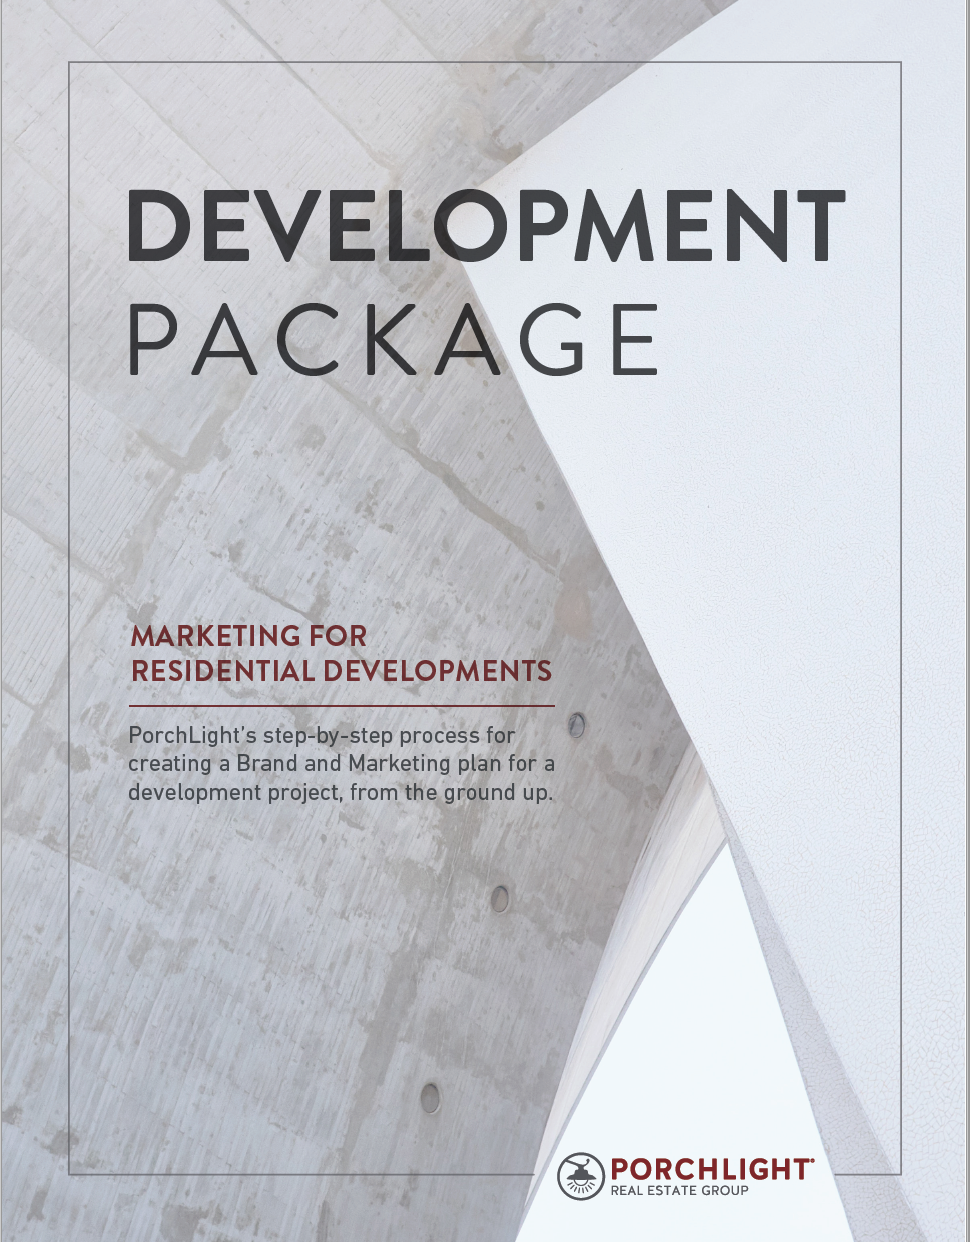 This package was a roadmap to create brands for residential developments, from logo creation to brand identity to launch. This is a basic roadmap that led to brands such a Fiveonking.com, Ivydenver.com and many others. Wrote and executed, and also rolled it out to the company.